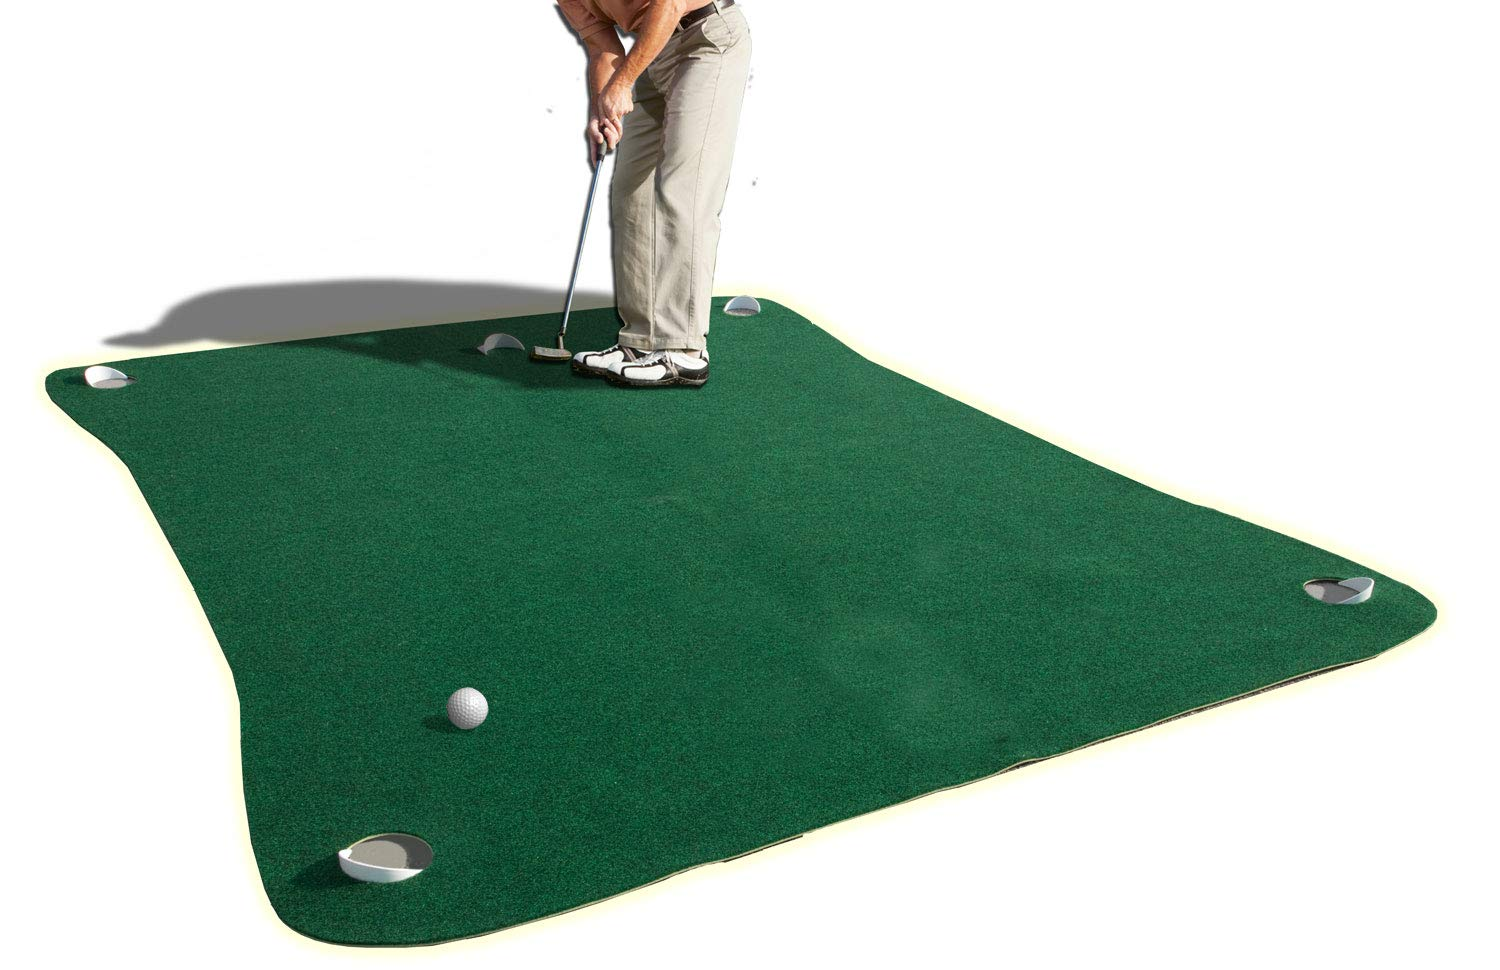 Putt-A-Bout Complete Putting System, 6 x 8-Feet